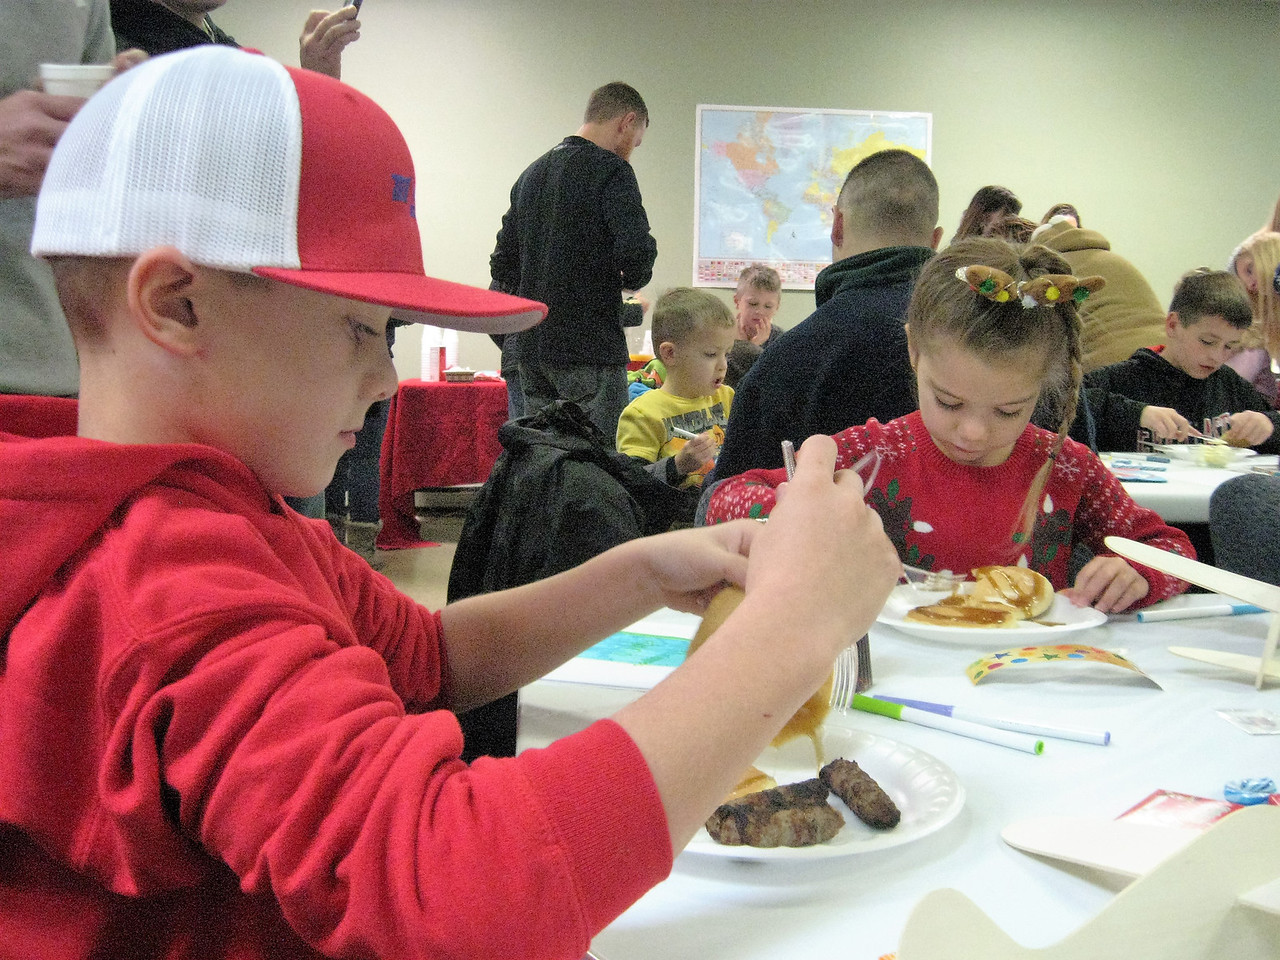 BOB SANDRICK / GAZETTE Carter Moore, 8, left, and his sister Riley Moore, 6, enjoyed crafts and breakfast before Santa's arrival Saturday at Wadsworth Municipal Airport. They were with parents Scott and Trudee Moore. The family is from New Franklin.